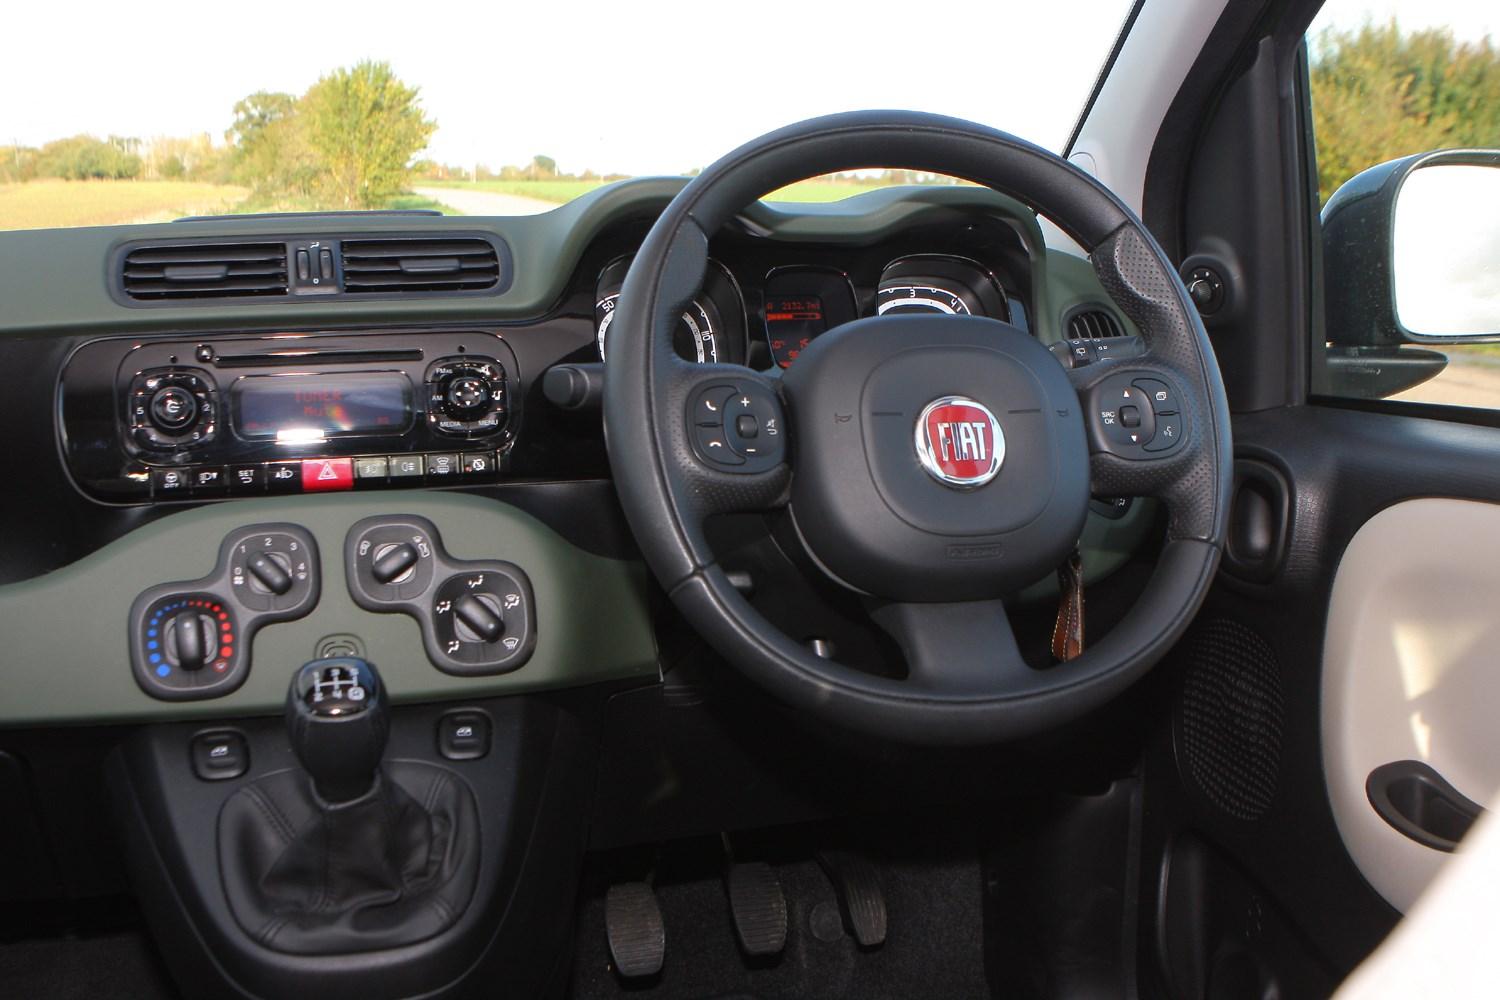 fiat panda 4x4 2012 features equipment and accessories parkers. Black Bedroom Furniture Sets. Home Design Ideas